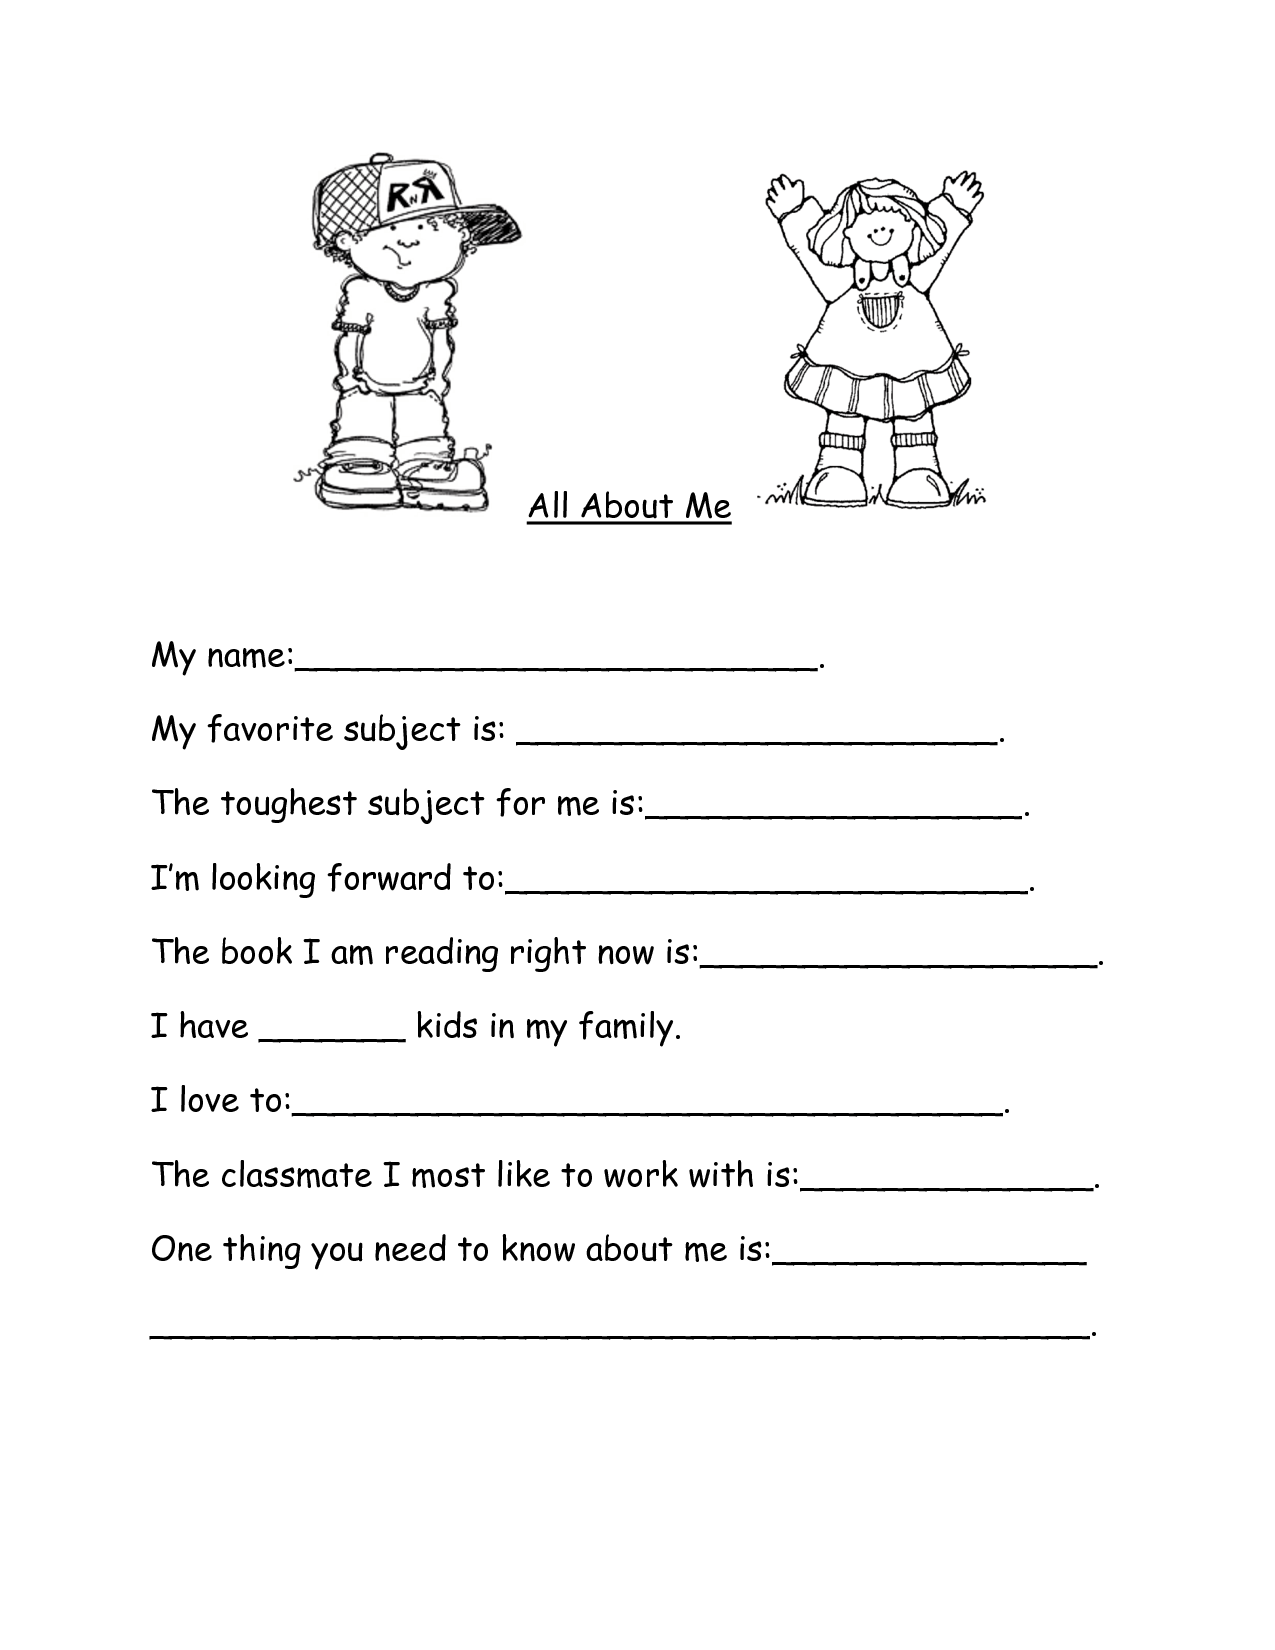 15 Best Images Of Me And I Worksheets